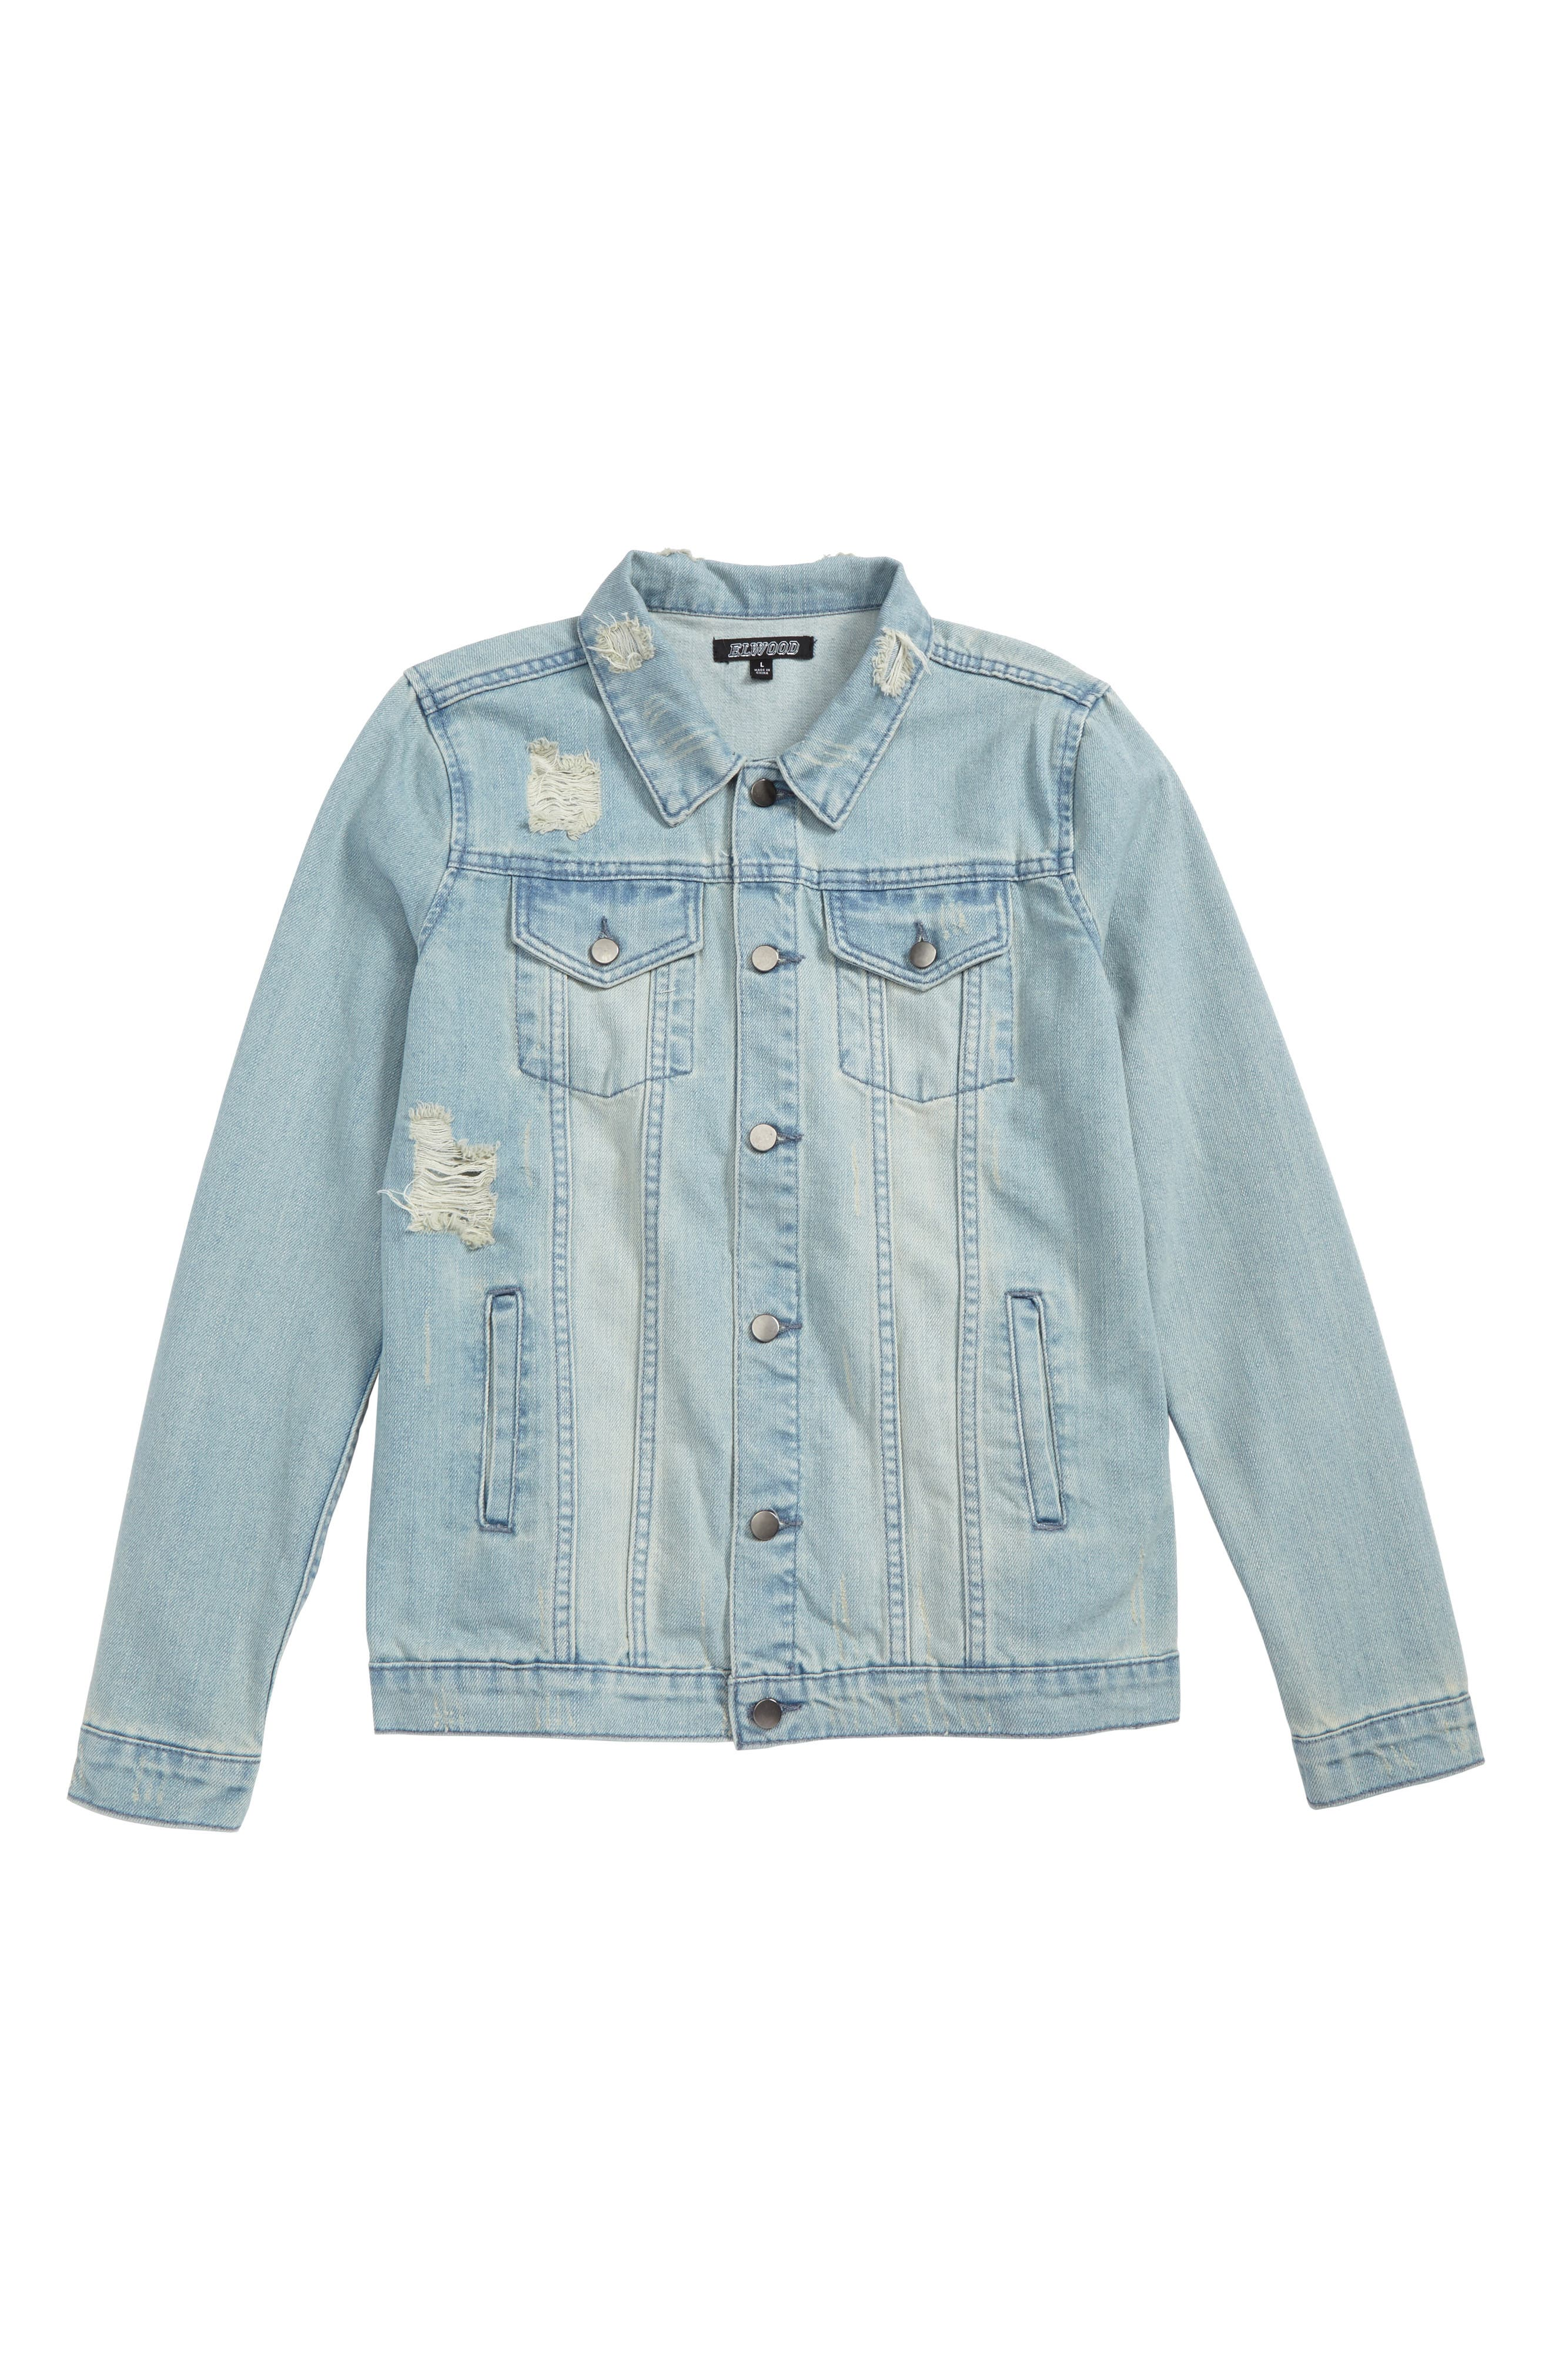 Destroyed Trucker Jacket,                             Main thumbnail 1, color,                             460